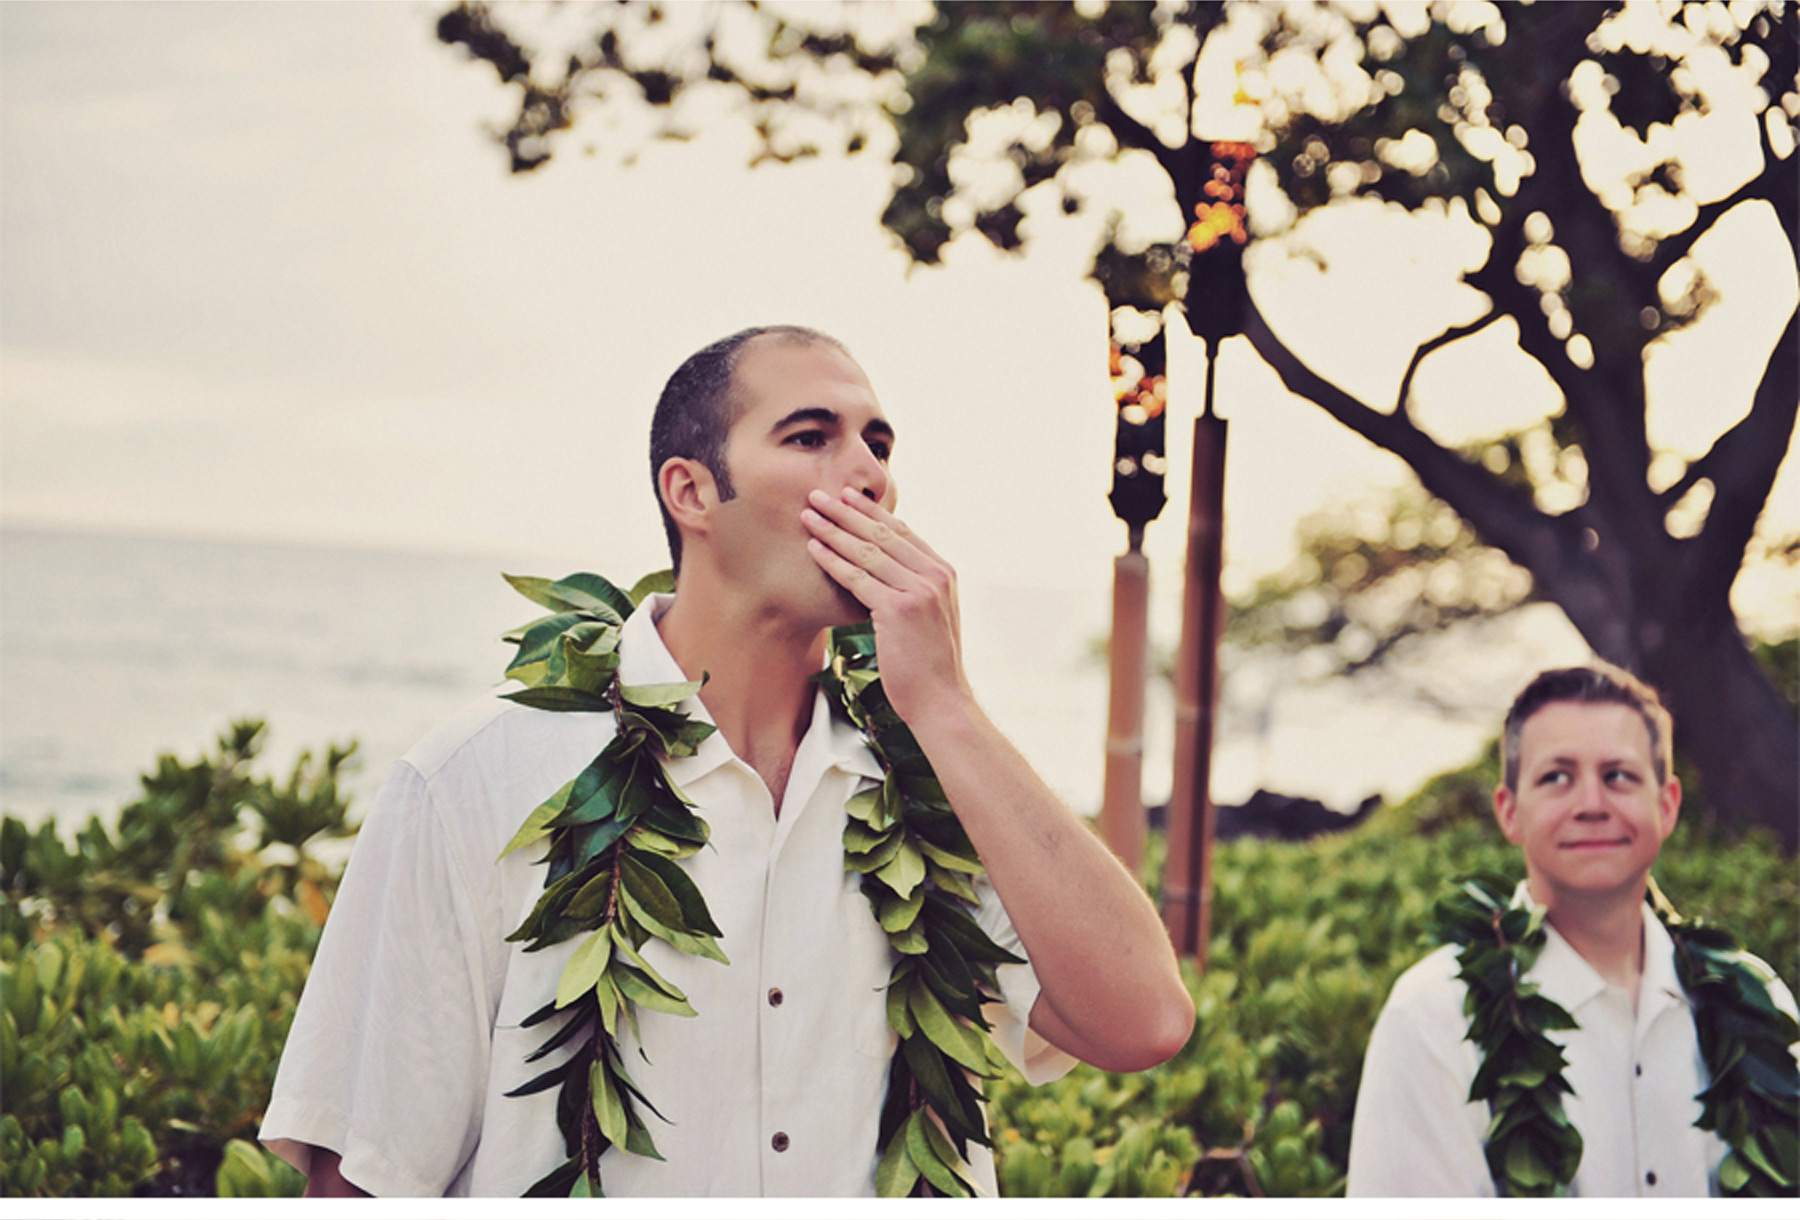 Our Muse - Tropical Hawaiian Wedding - Be inspired by Kelly & Kaniela's tropical, vintage Hawaiian wedding - beach, mauna kea beach hotel, lei, vintage, hawaii, big island, wedding, portraits, ceci new york, custom crest, custom monogram